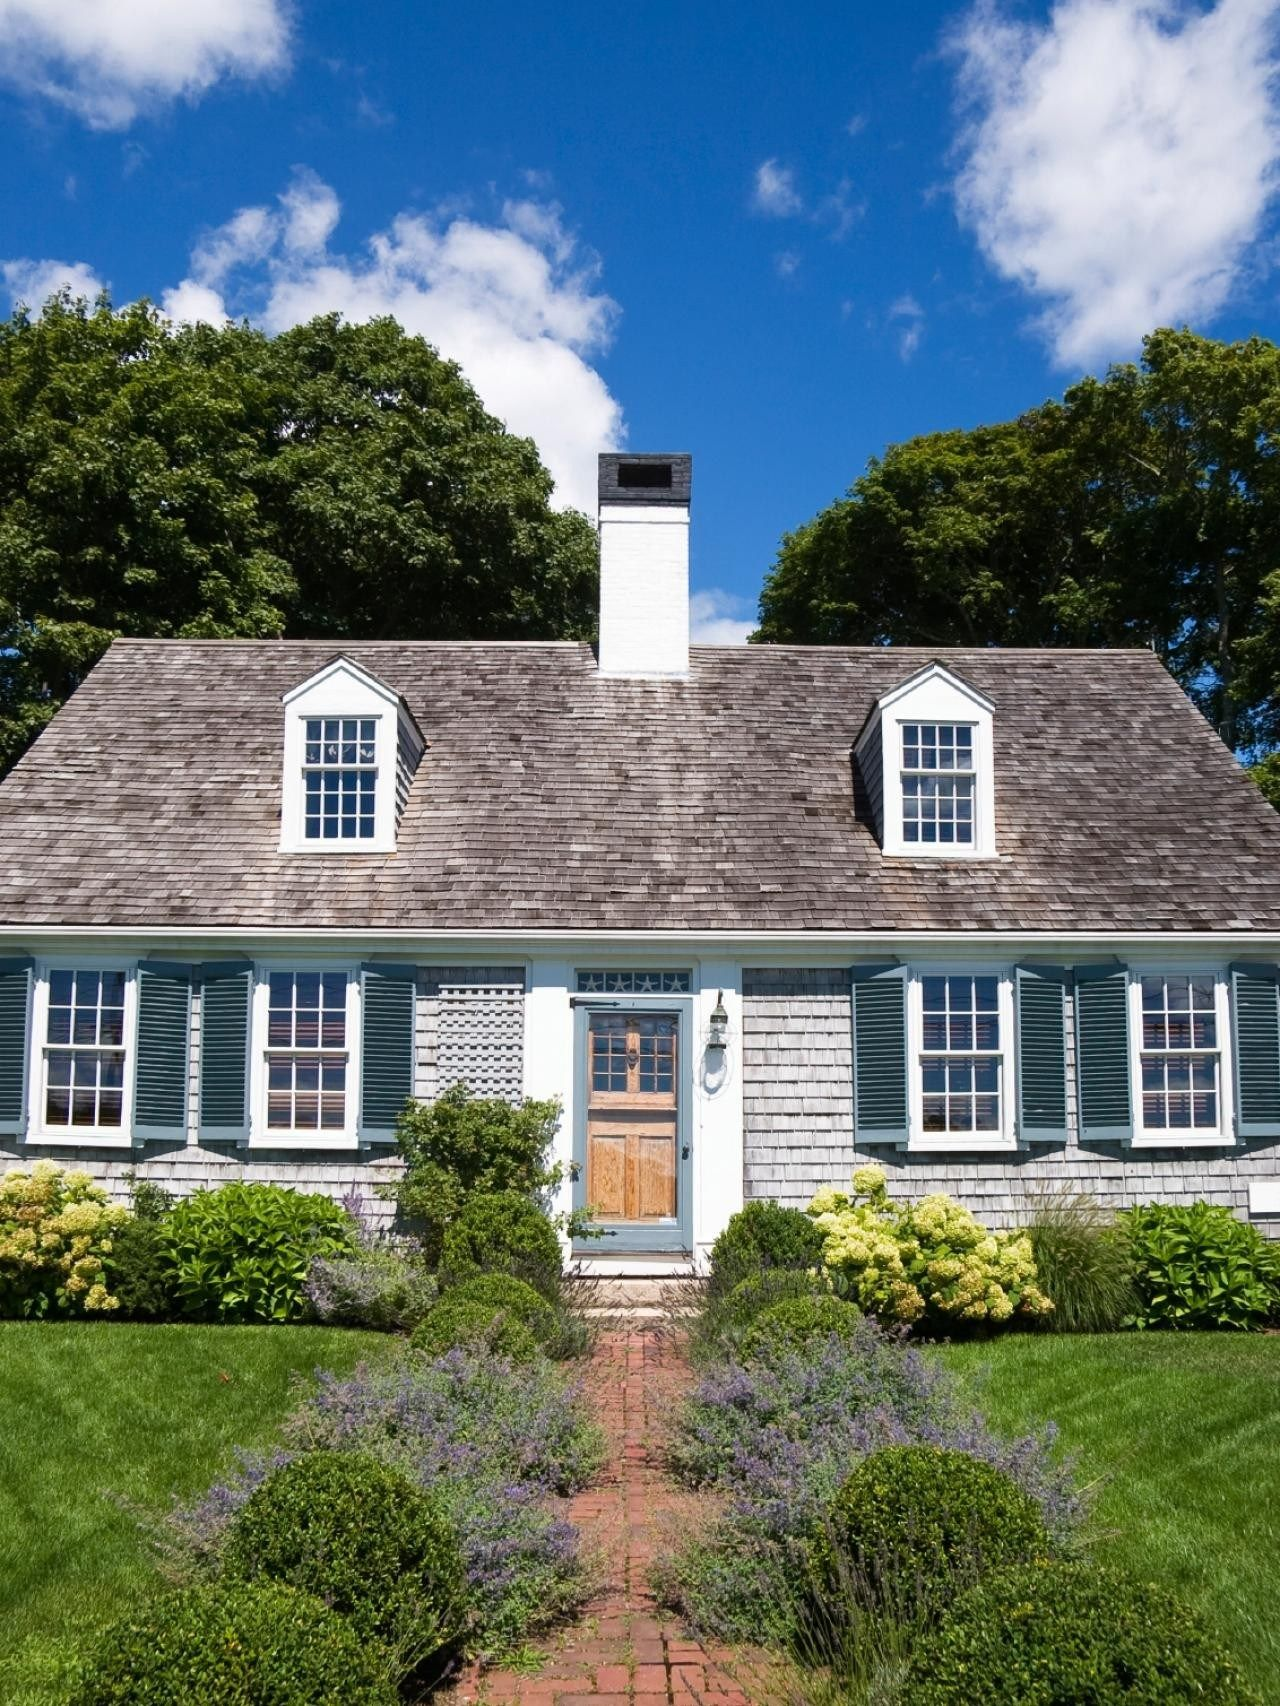 Cape Cod House Colors : house, colors, Everything, About, Style, Houses